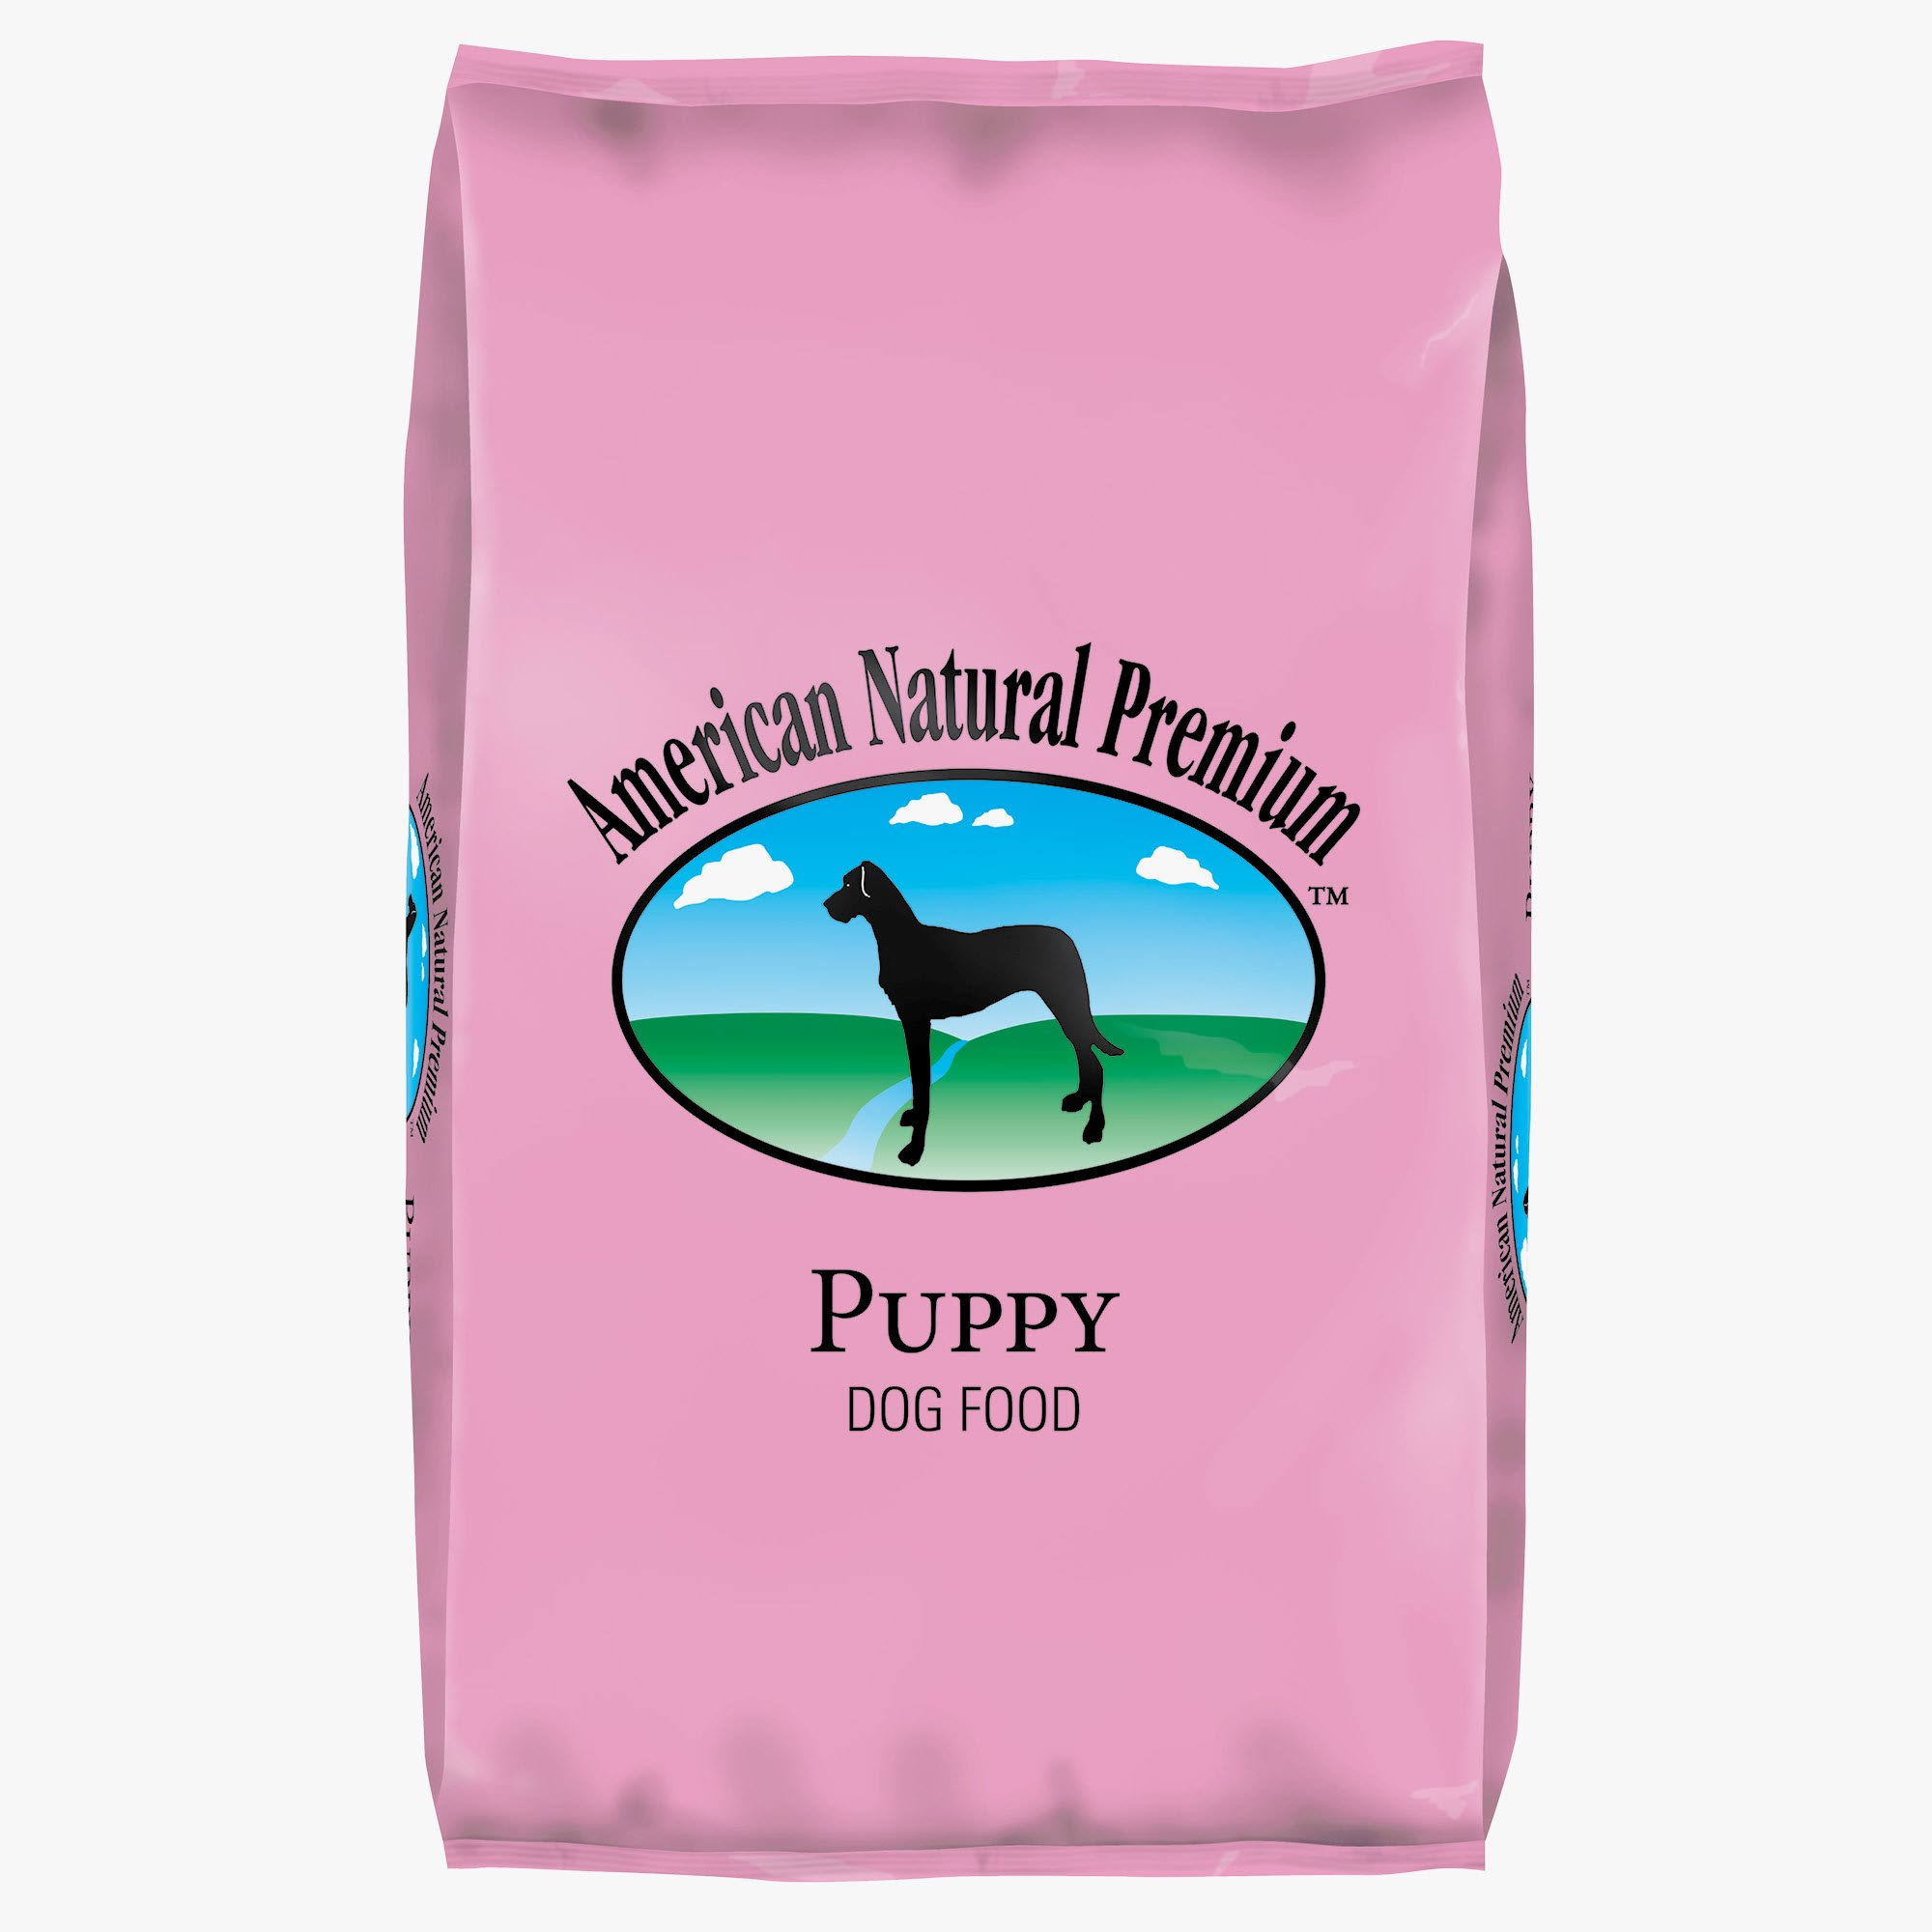 American Natural Premium Puppy Dry Dog Food, 12-lb Bag